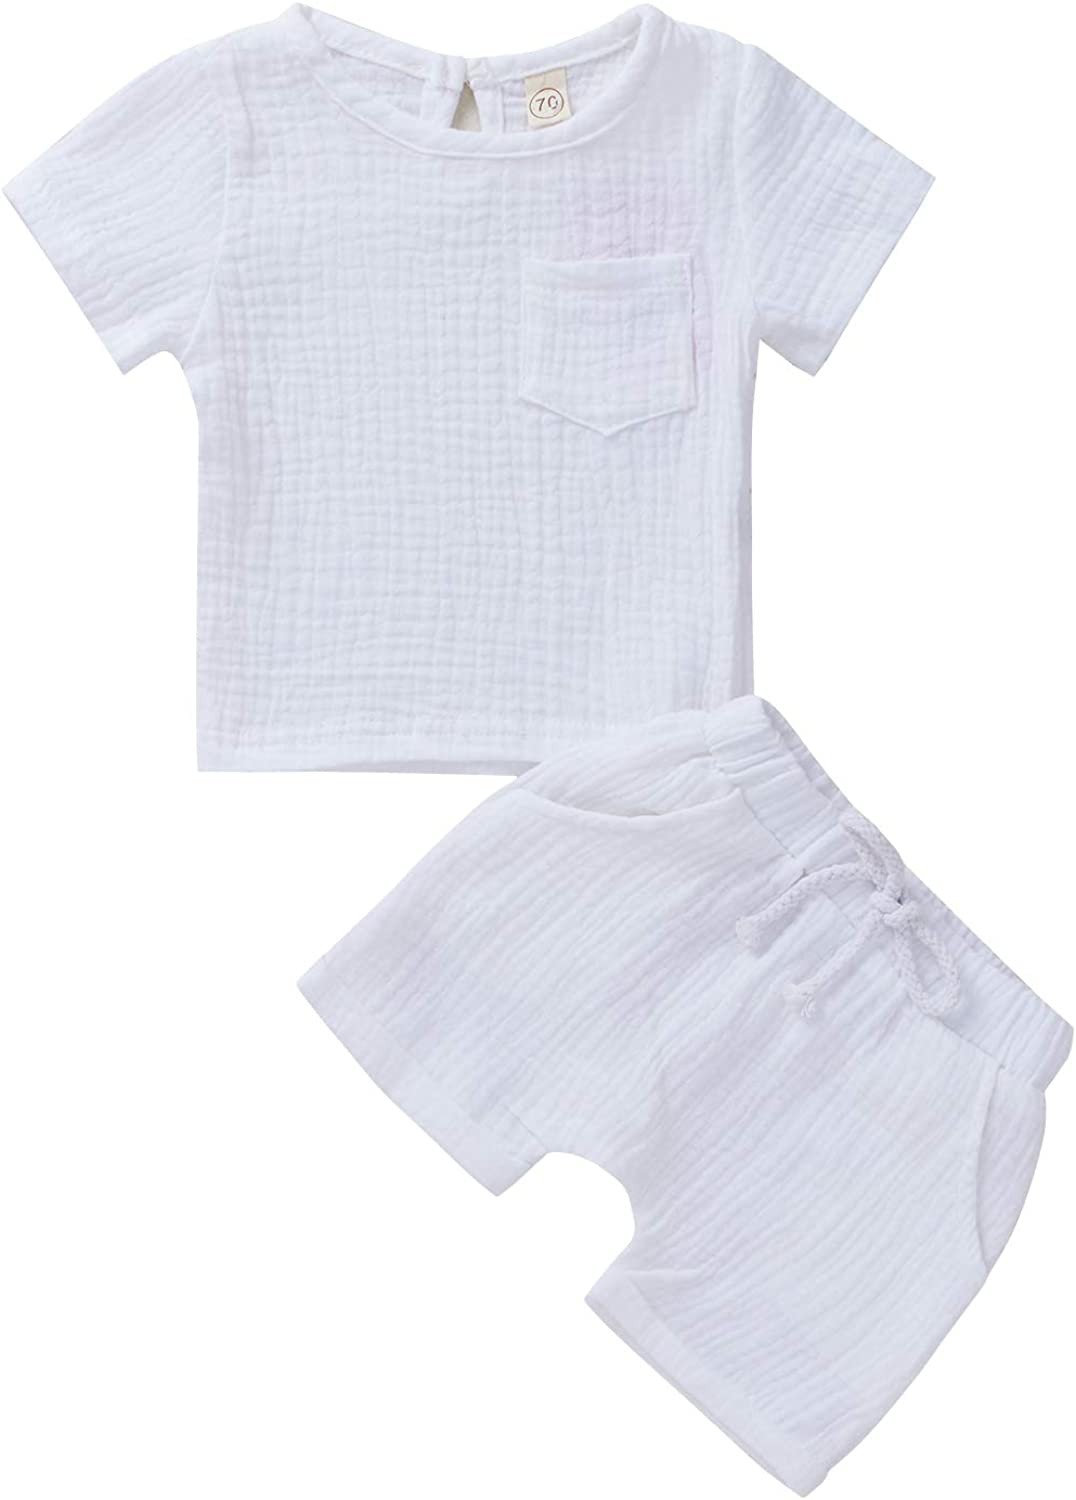 Booraho Newborn Baby Clothes Unisex Set Solid Color Short Sleeve T-Shirt Tops Shorts Pant 2PCS Outfits